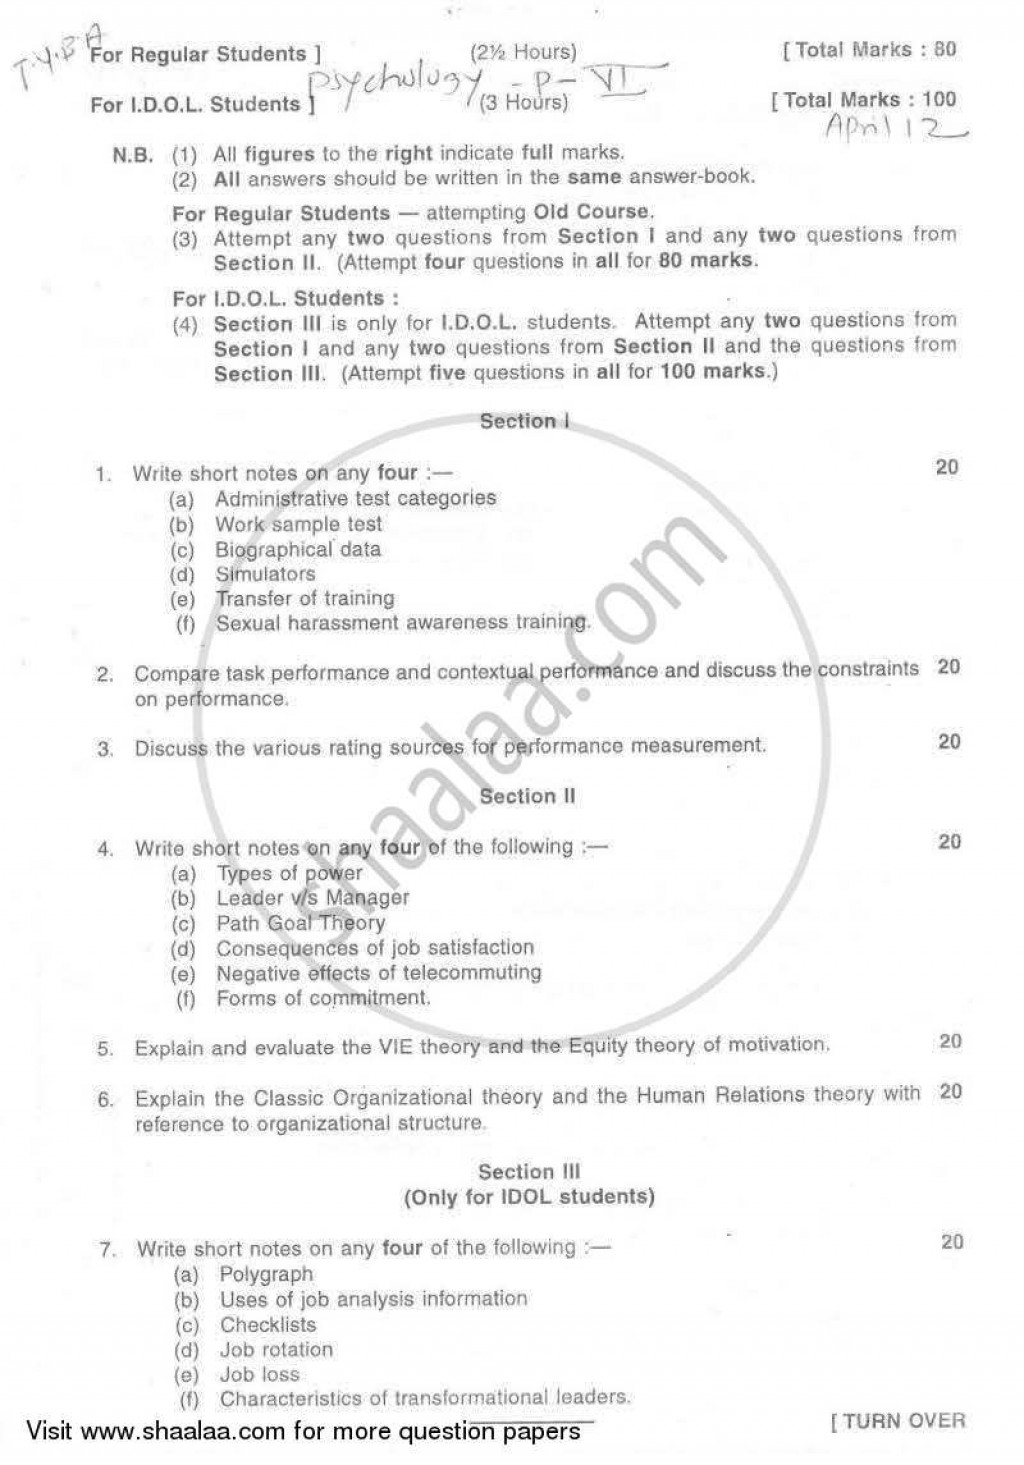 017 Psychologyearch Paper On Dreams University Of Mumbai Bachelor Industrial Organizational T Y Yearly Pattern Semester Tyba 2011 29a03925dfc524f2aa4cb10e4d3da996a Singular Psychology Research Topics Articles Large